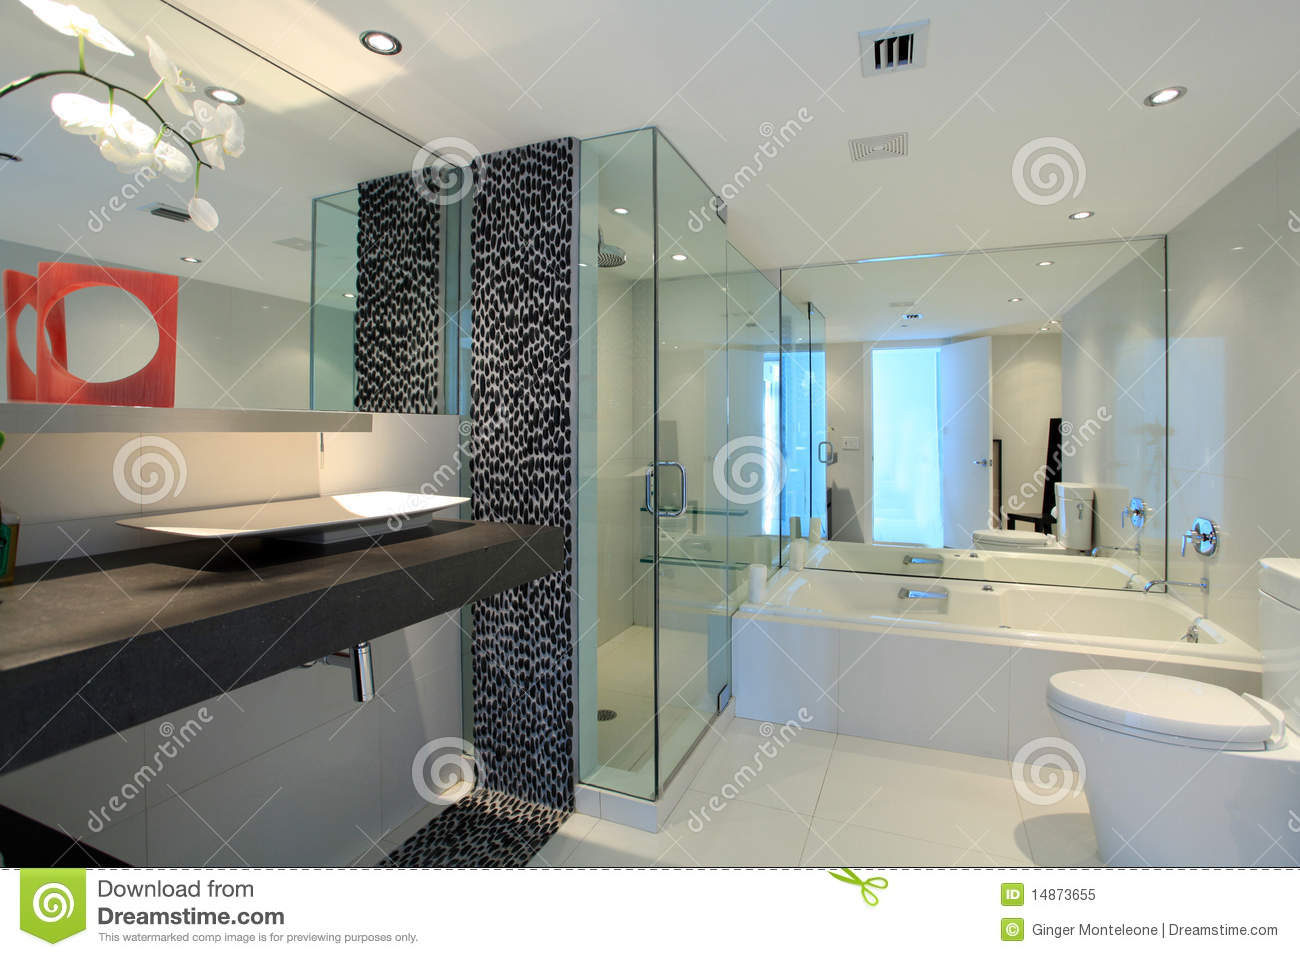 Salle de bains contemporaine image stock image 14873655 for Photo salle de bain contemporaine